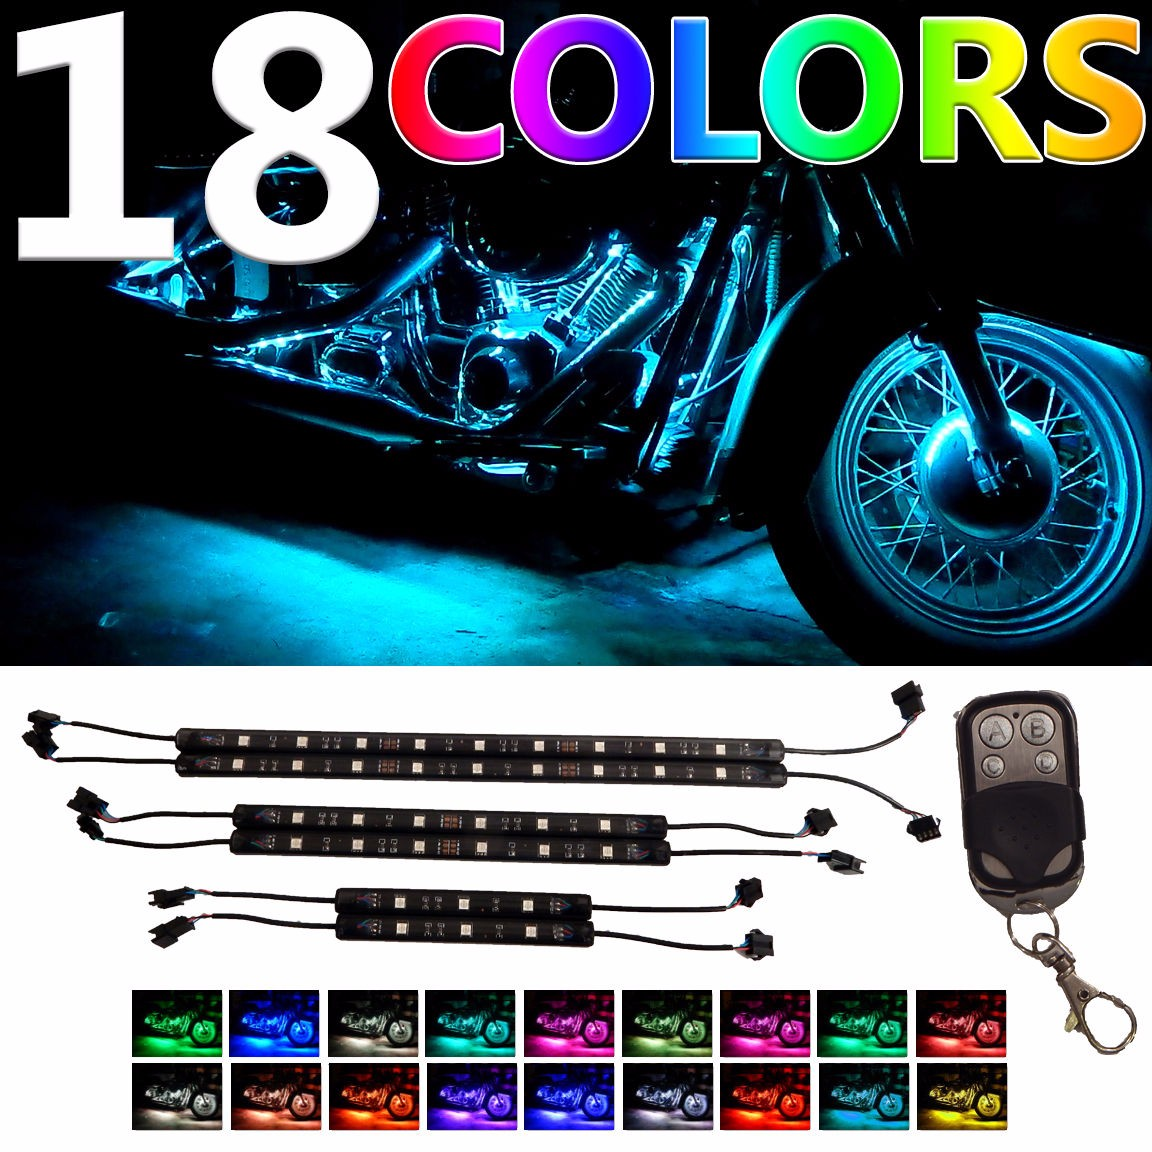 6Pcs 18 Colors Motorcycle LED Neon Flexible Strips Light Lighting Kit 2 Million